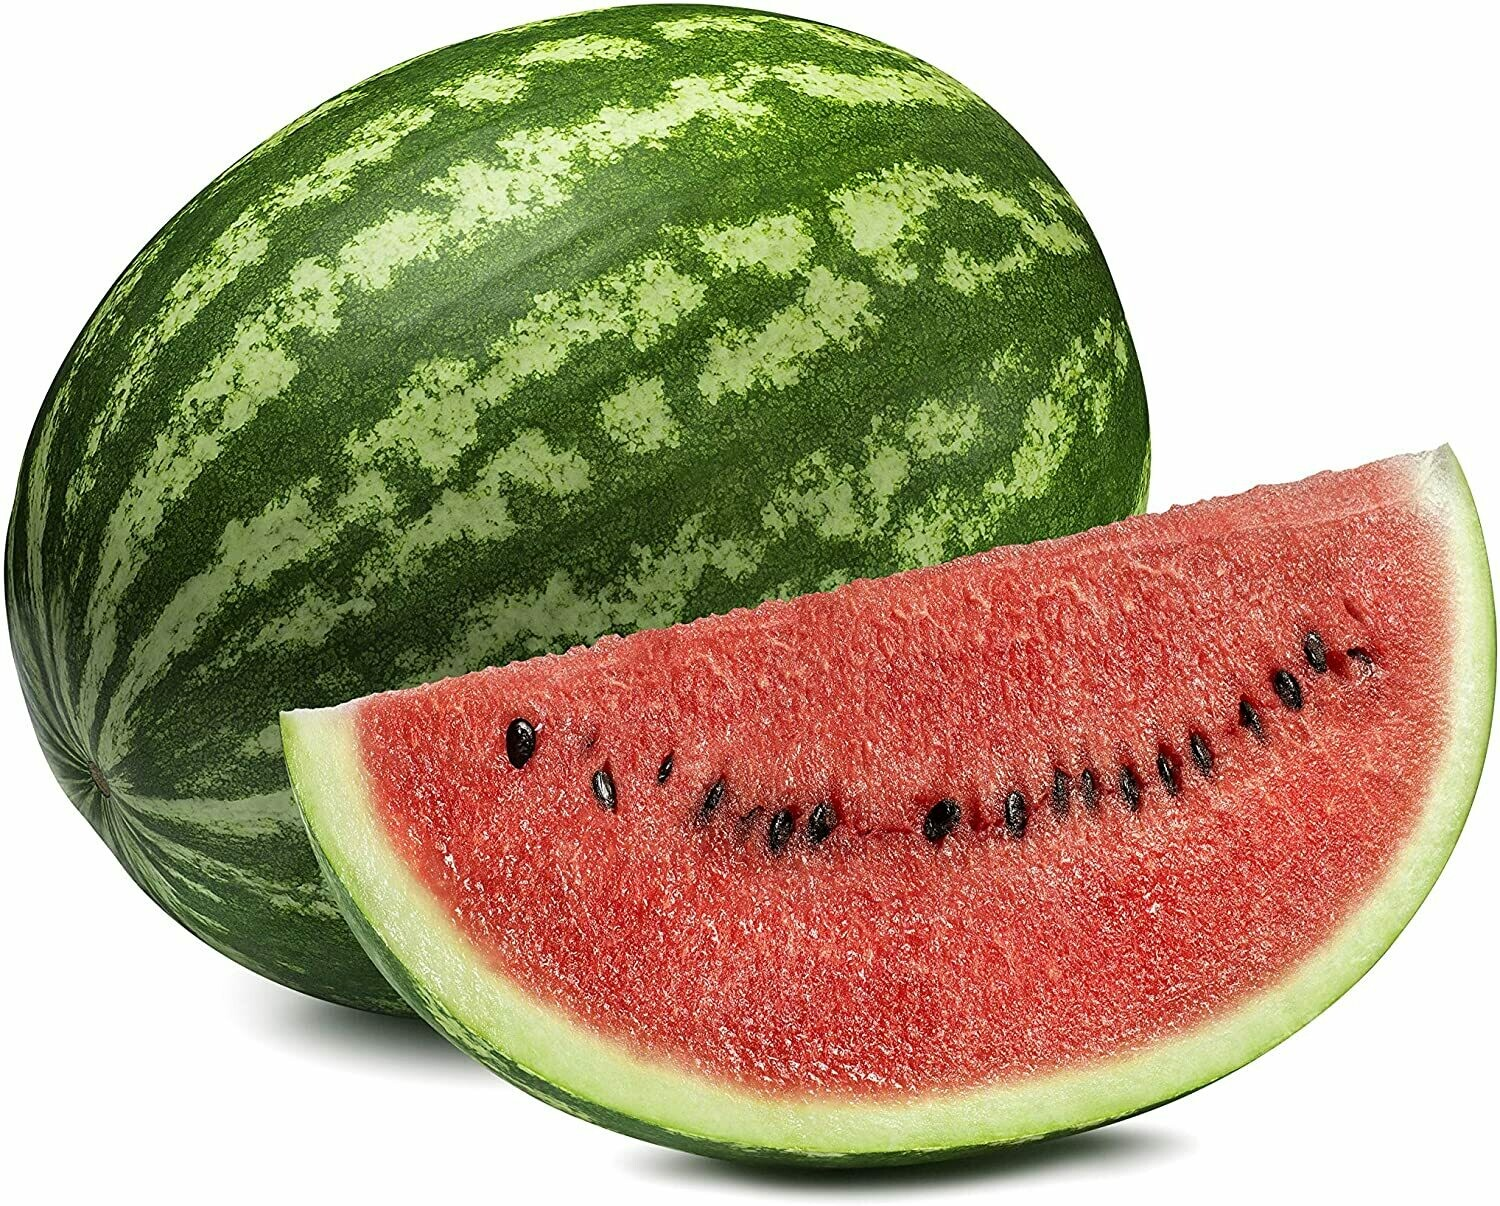 ሀባብ Water Melon (Ethiopia Only)